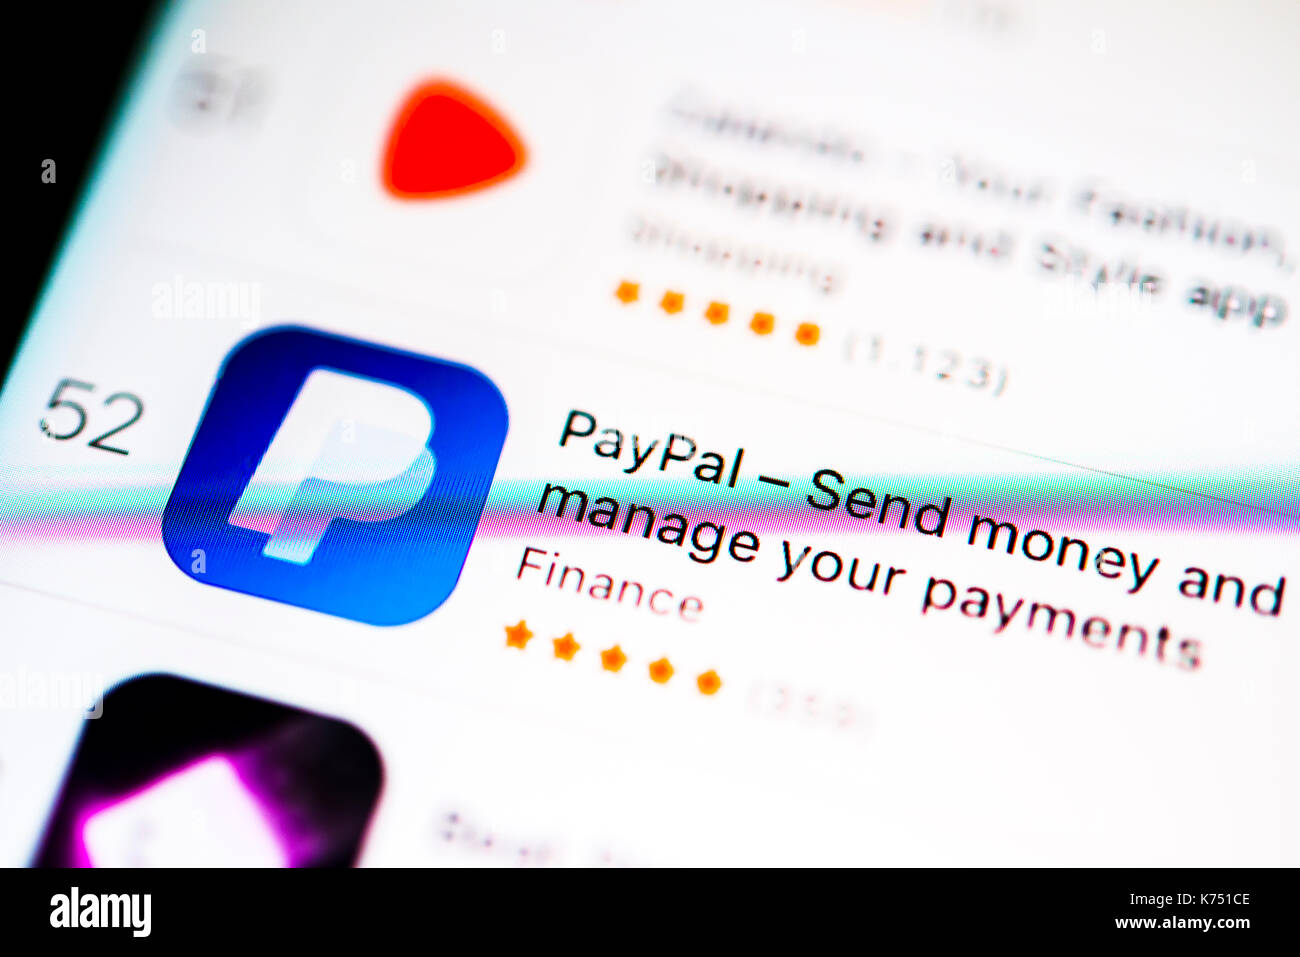 PayPal app in the Apple App Store, online banking, display